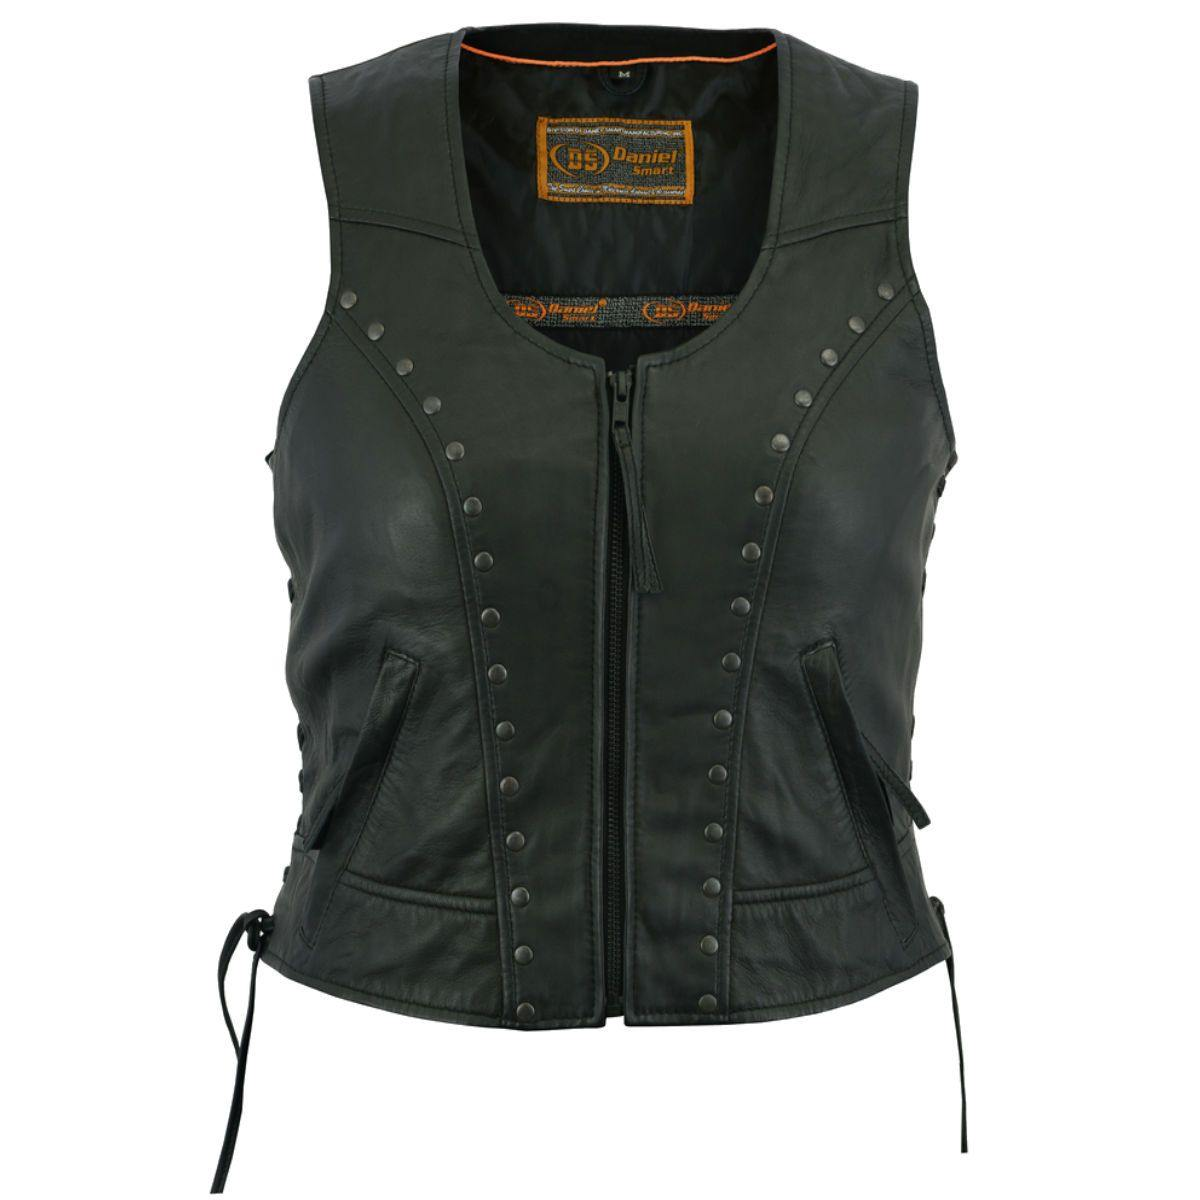 Daniel Smart Women's Lightweight Vest with Rivets Detailing